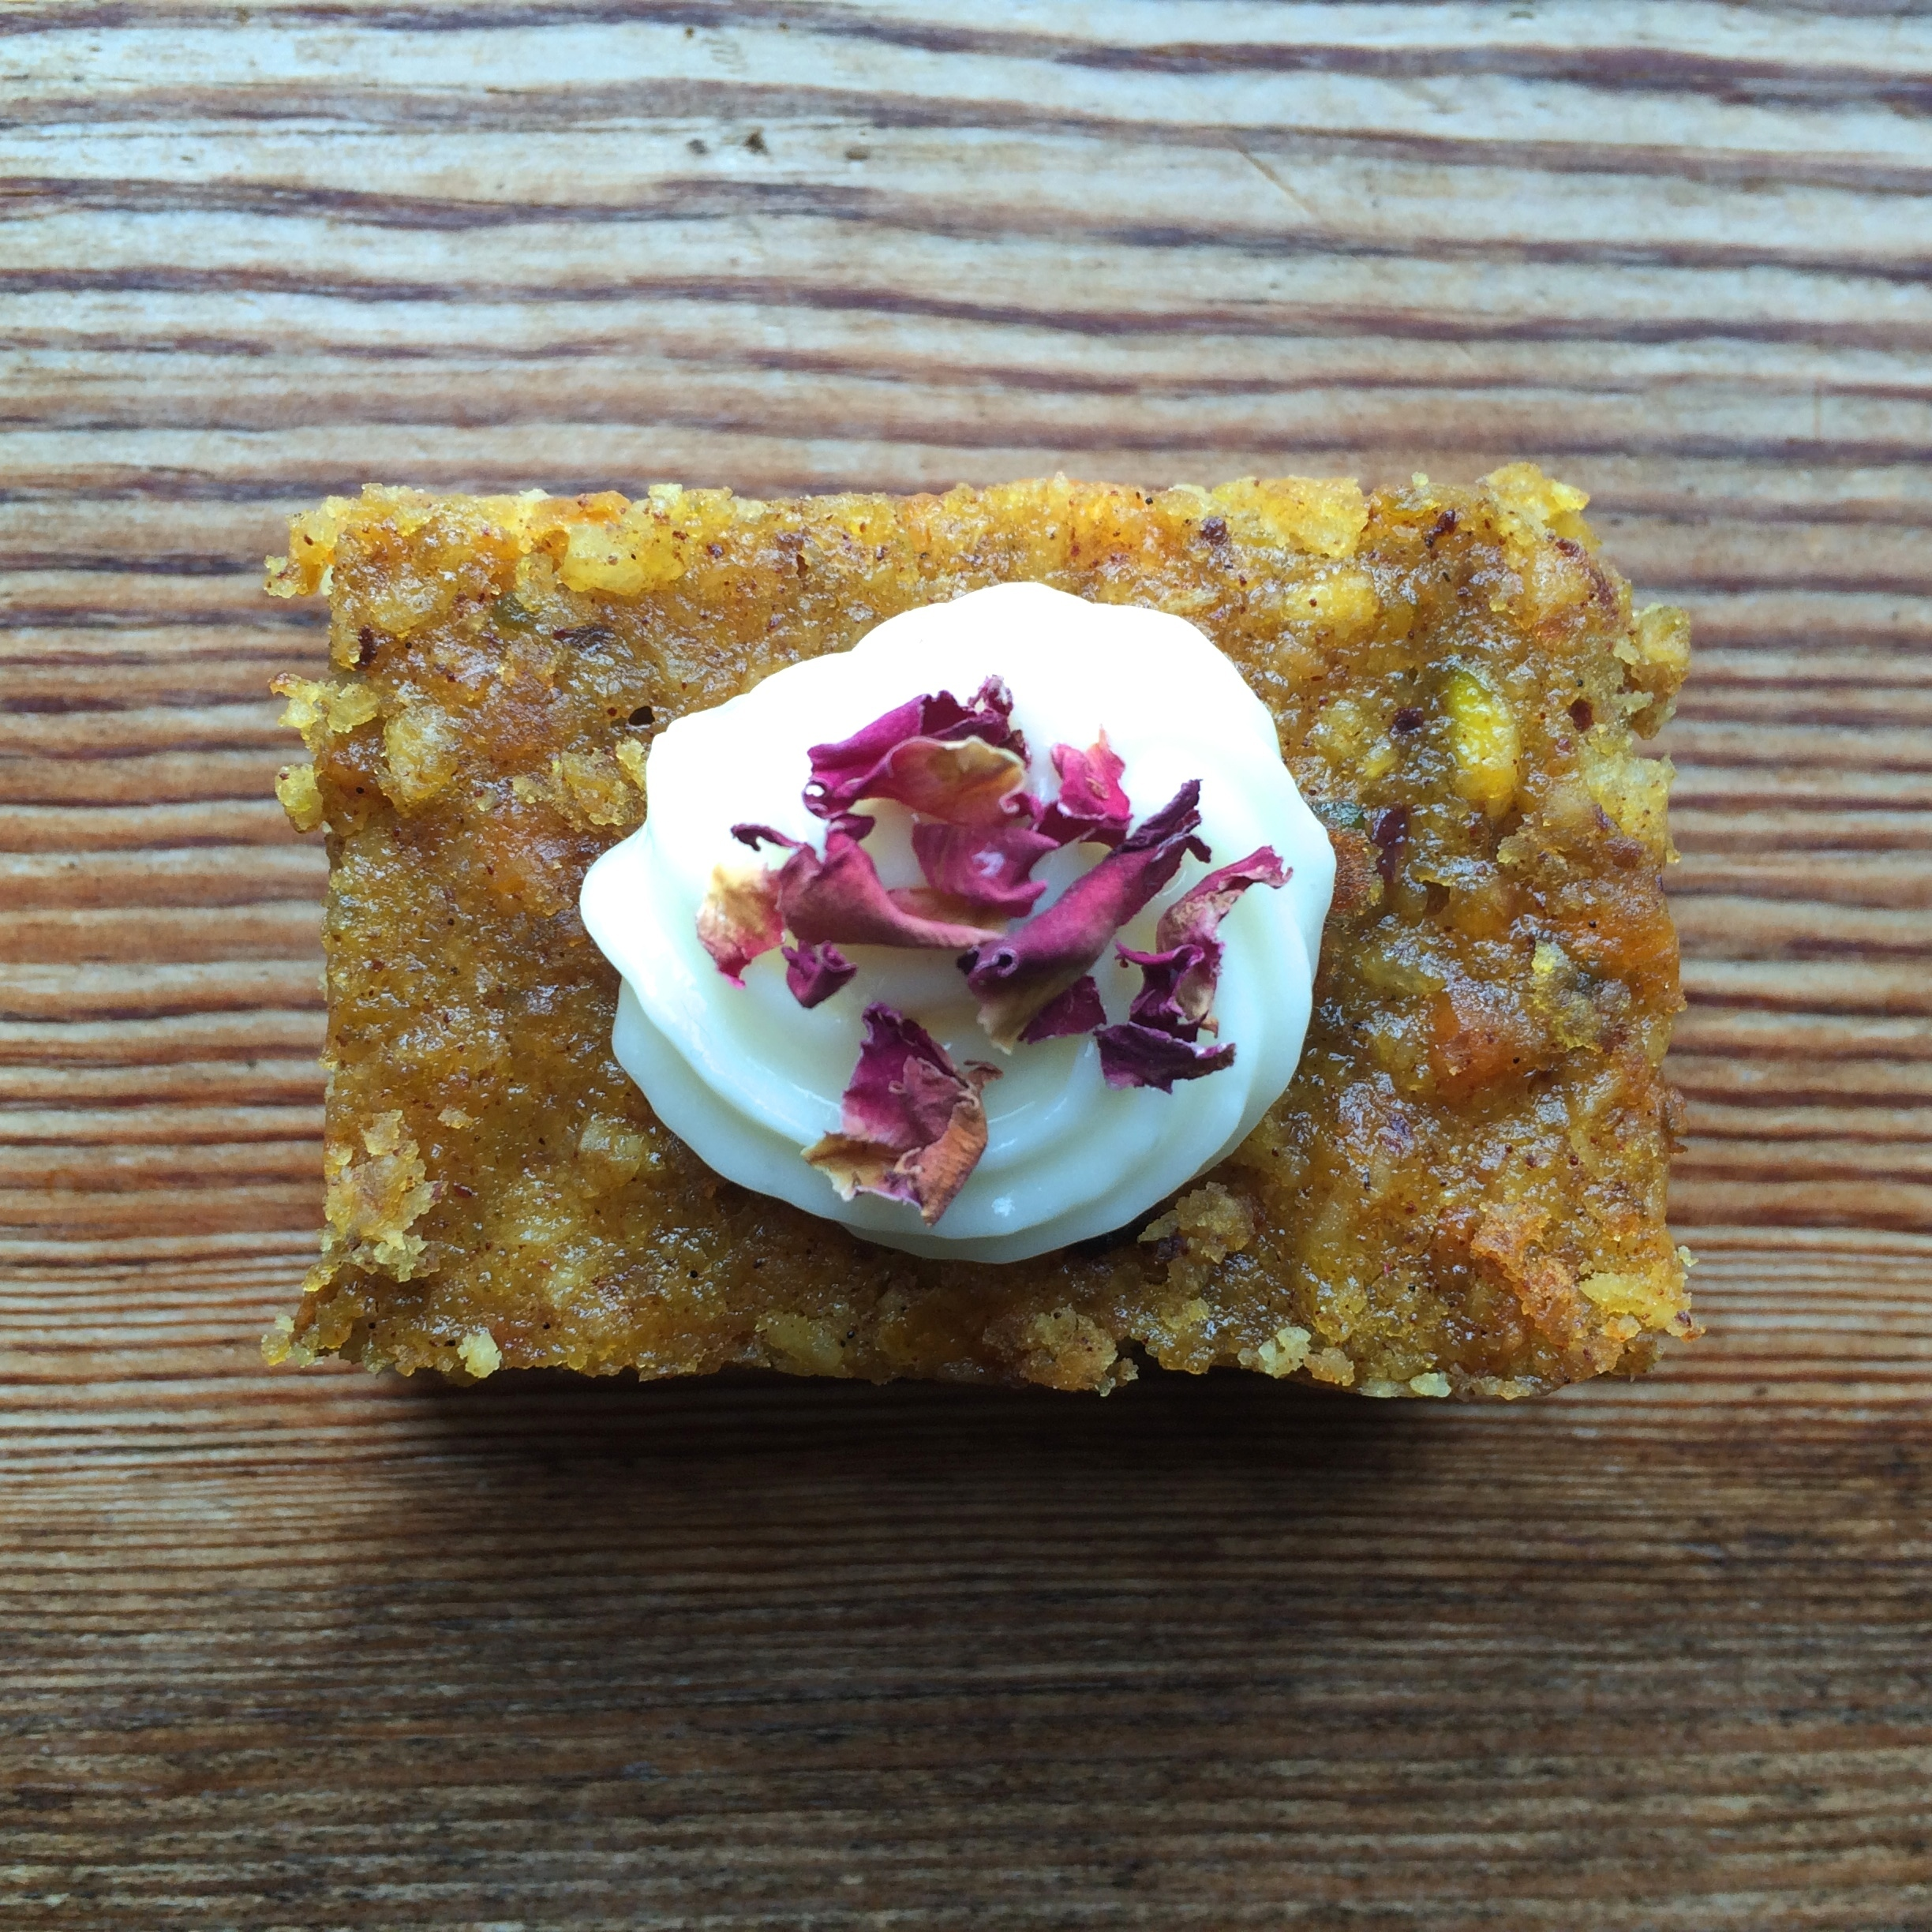 Gluten-Free Spiced Carrot, Pistachio and Almond Cake with Honey Icing